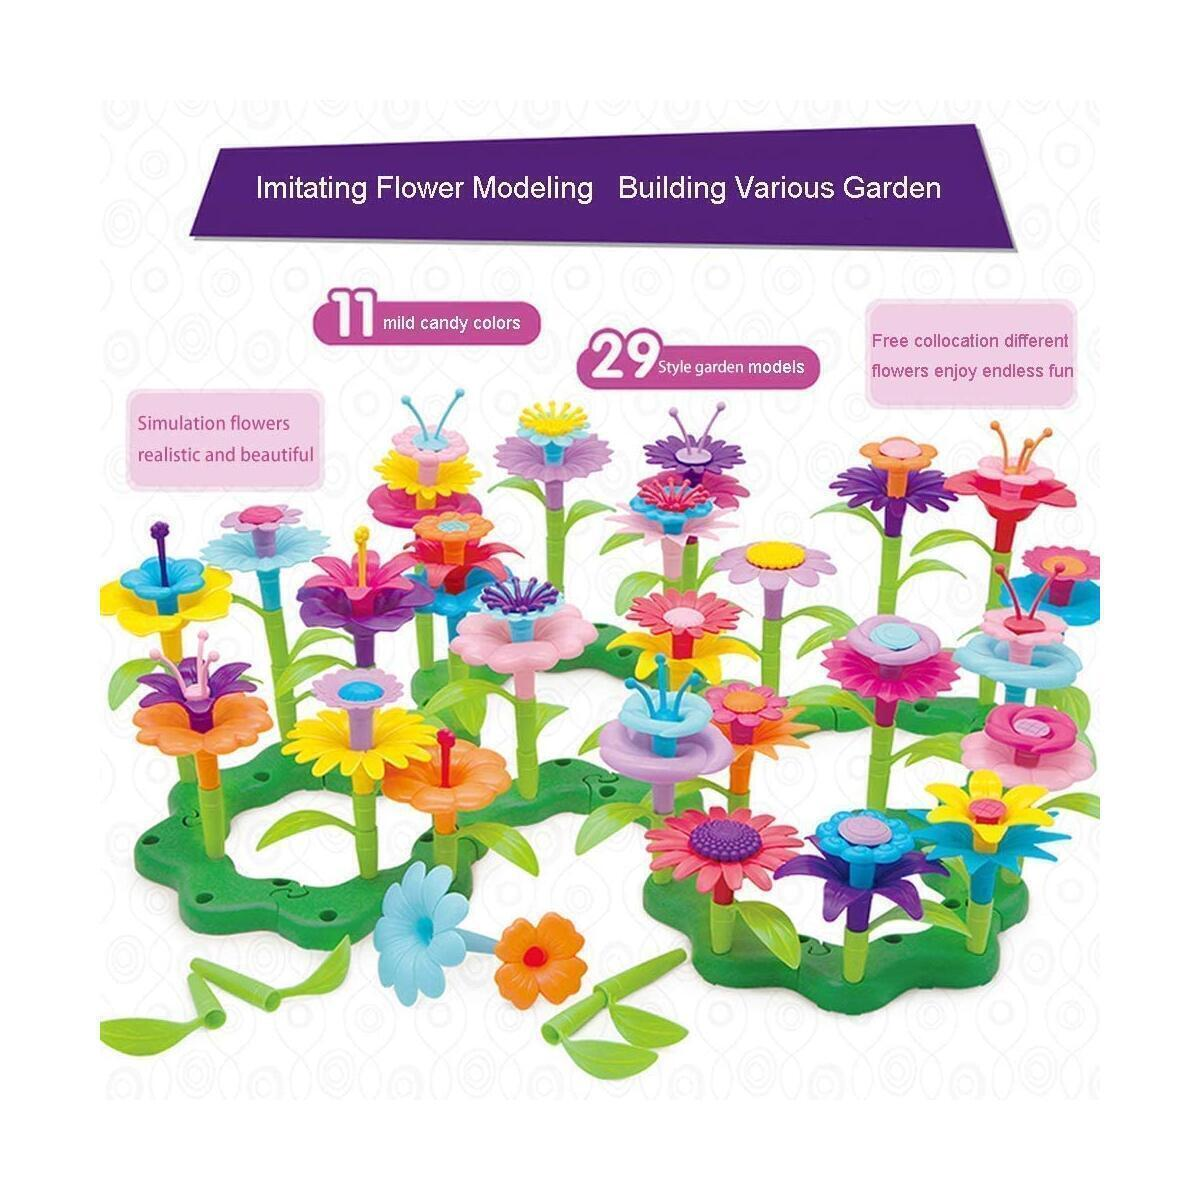 Happytime Flower Garden Building Toy Set -148 Pcs Build a Bouquet Floral Arrangement Playset Pretend Gardening Blocks Educational Creative Craft Toys for 3, 4, 5, 6 7 8 Year Old Toddlers Kids Girls